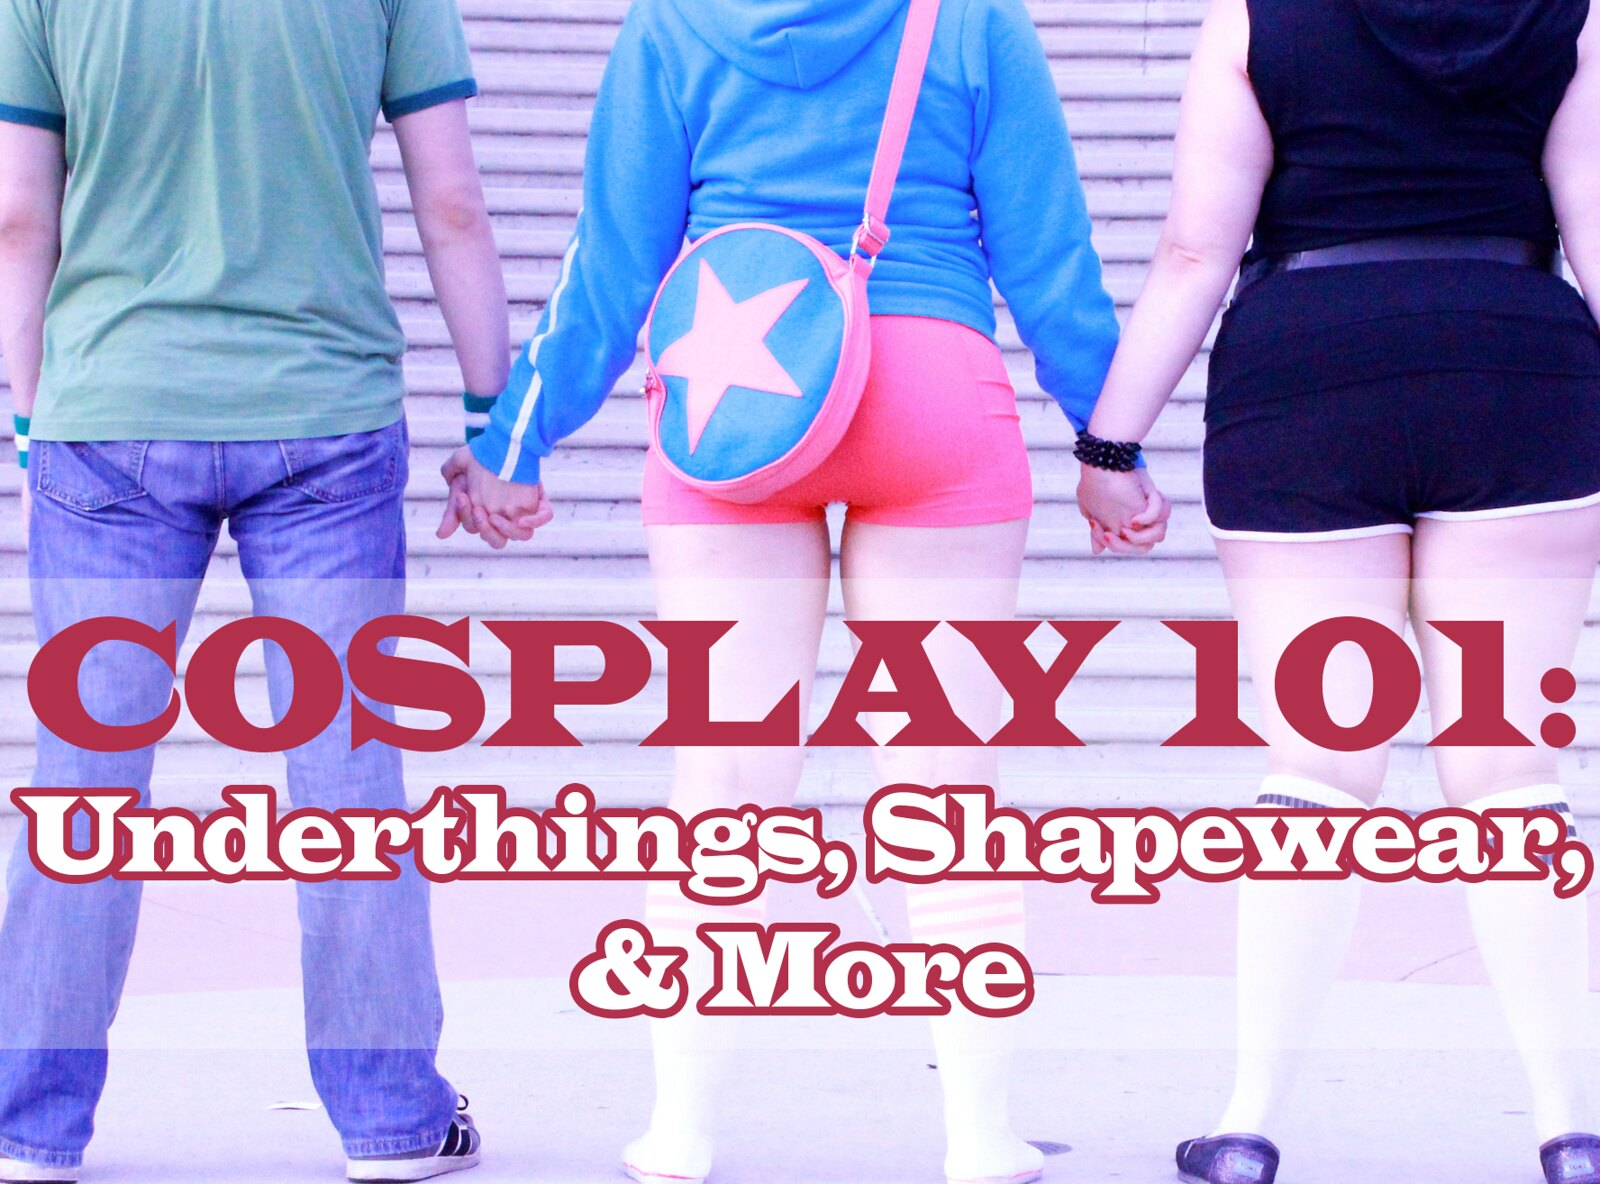 Cosplay 101: Underthings, Shapewear, & More